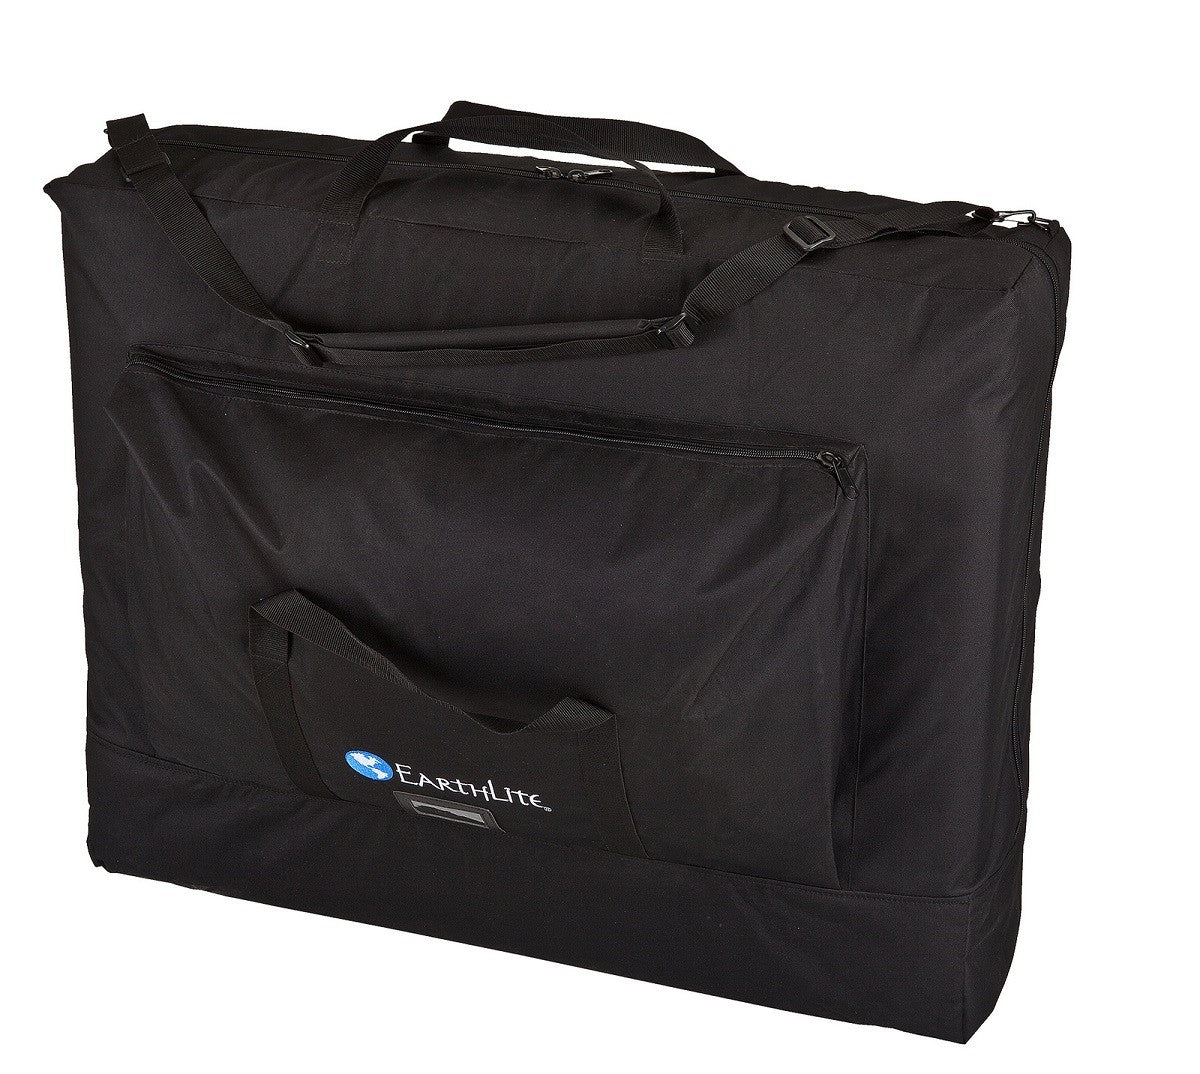 Earthlite Standard Carry Case for Massage Tables